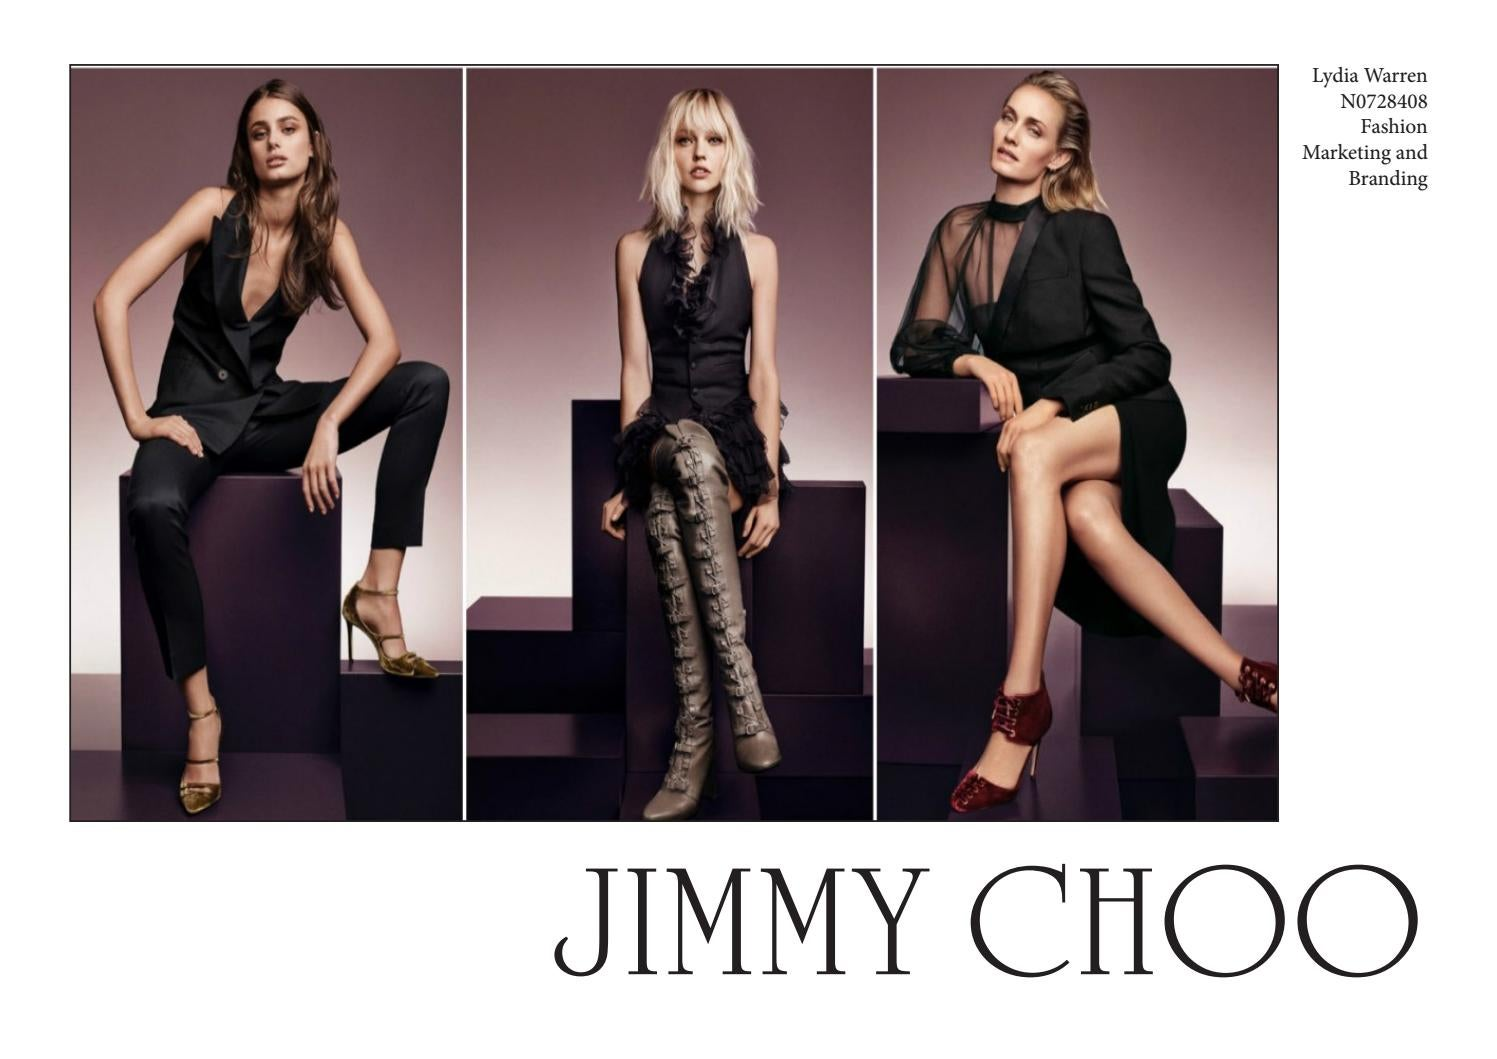 258f21a2a6 Jimmy Choo Situational Analysis by lydiawarren - issuu